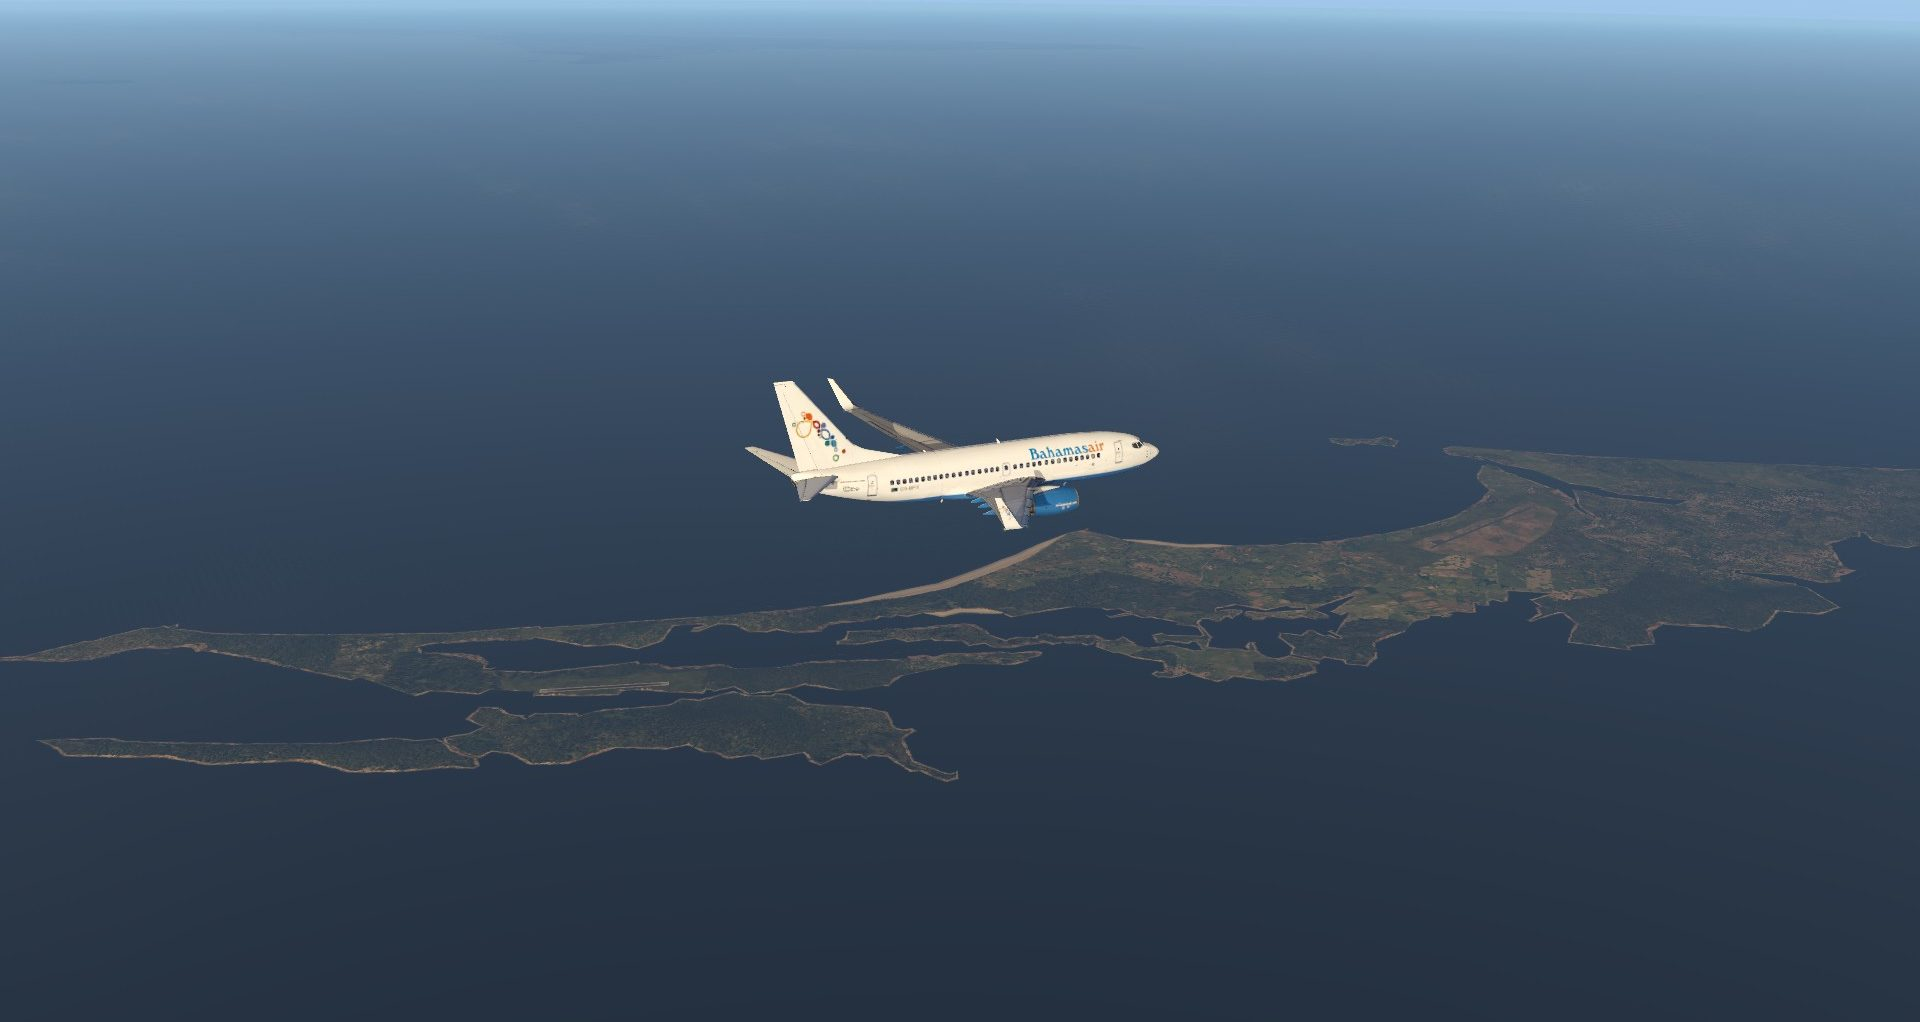 X-Plane-11-gets-full-Vulcan-support-with-the-new-1150.jpg